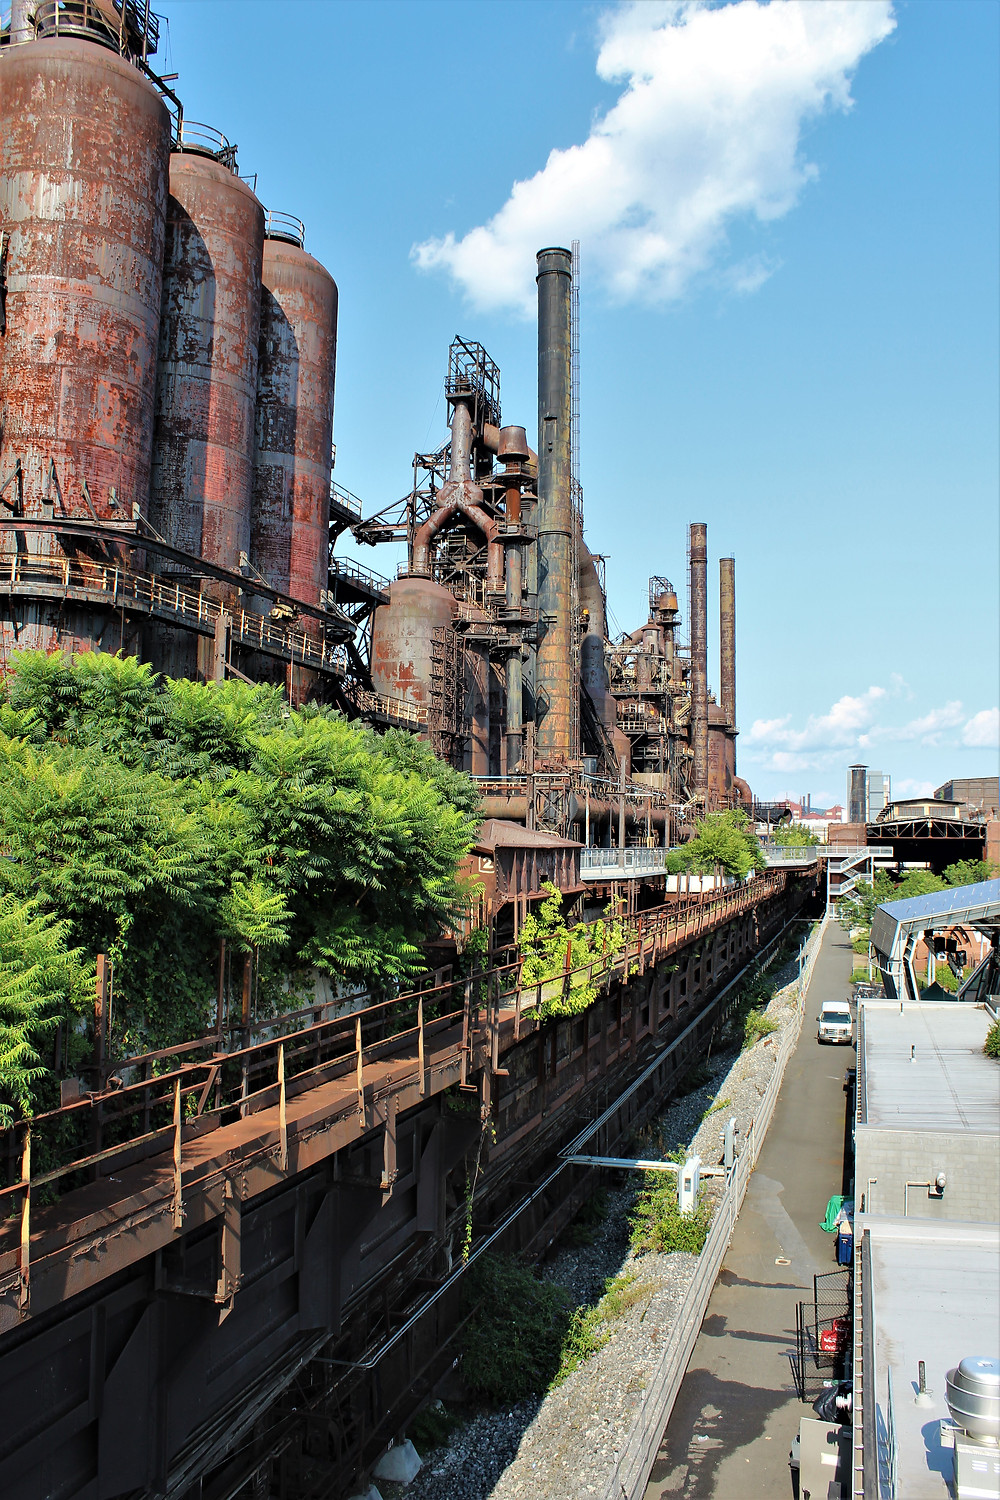 Row of Blast Furnaces from the Hoover-Mason Trestle